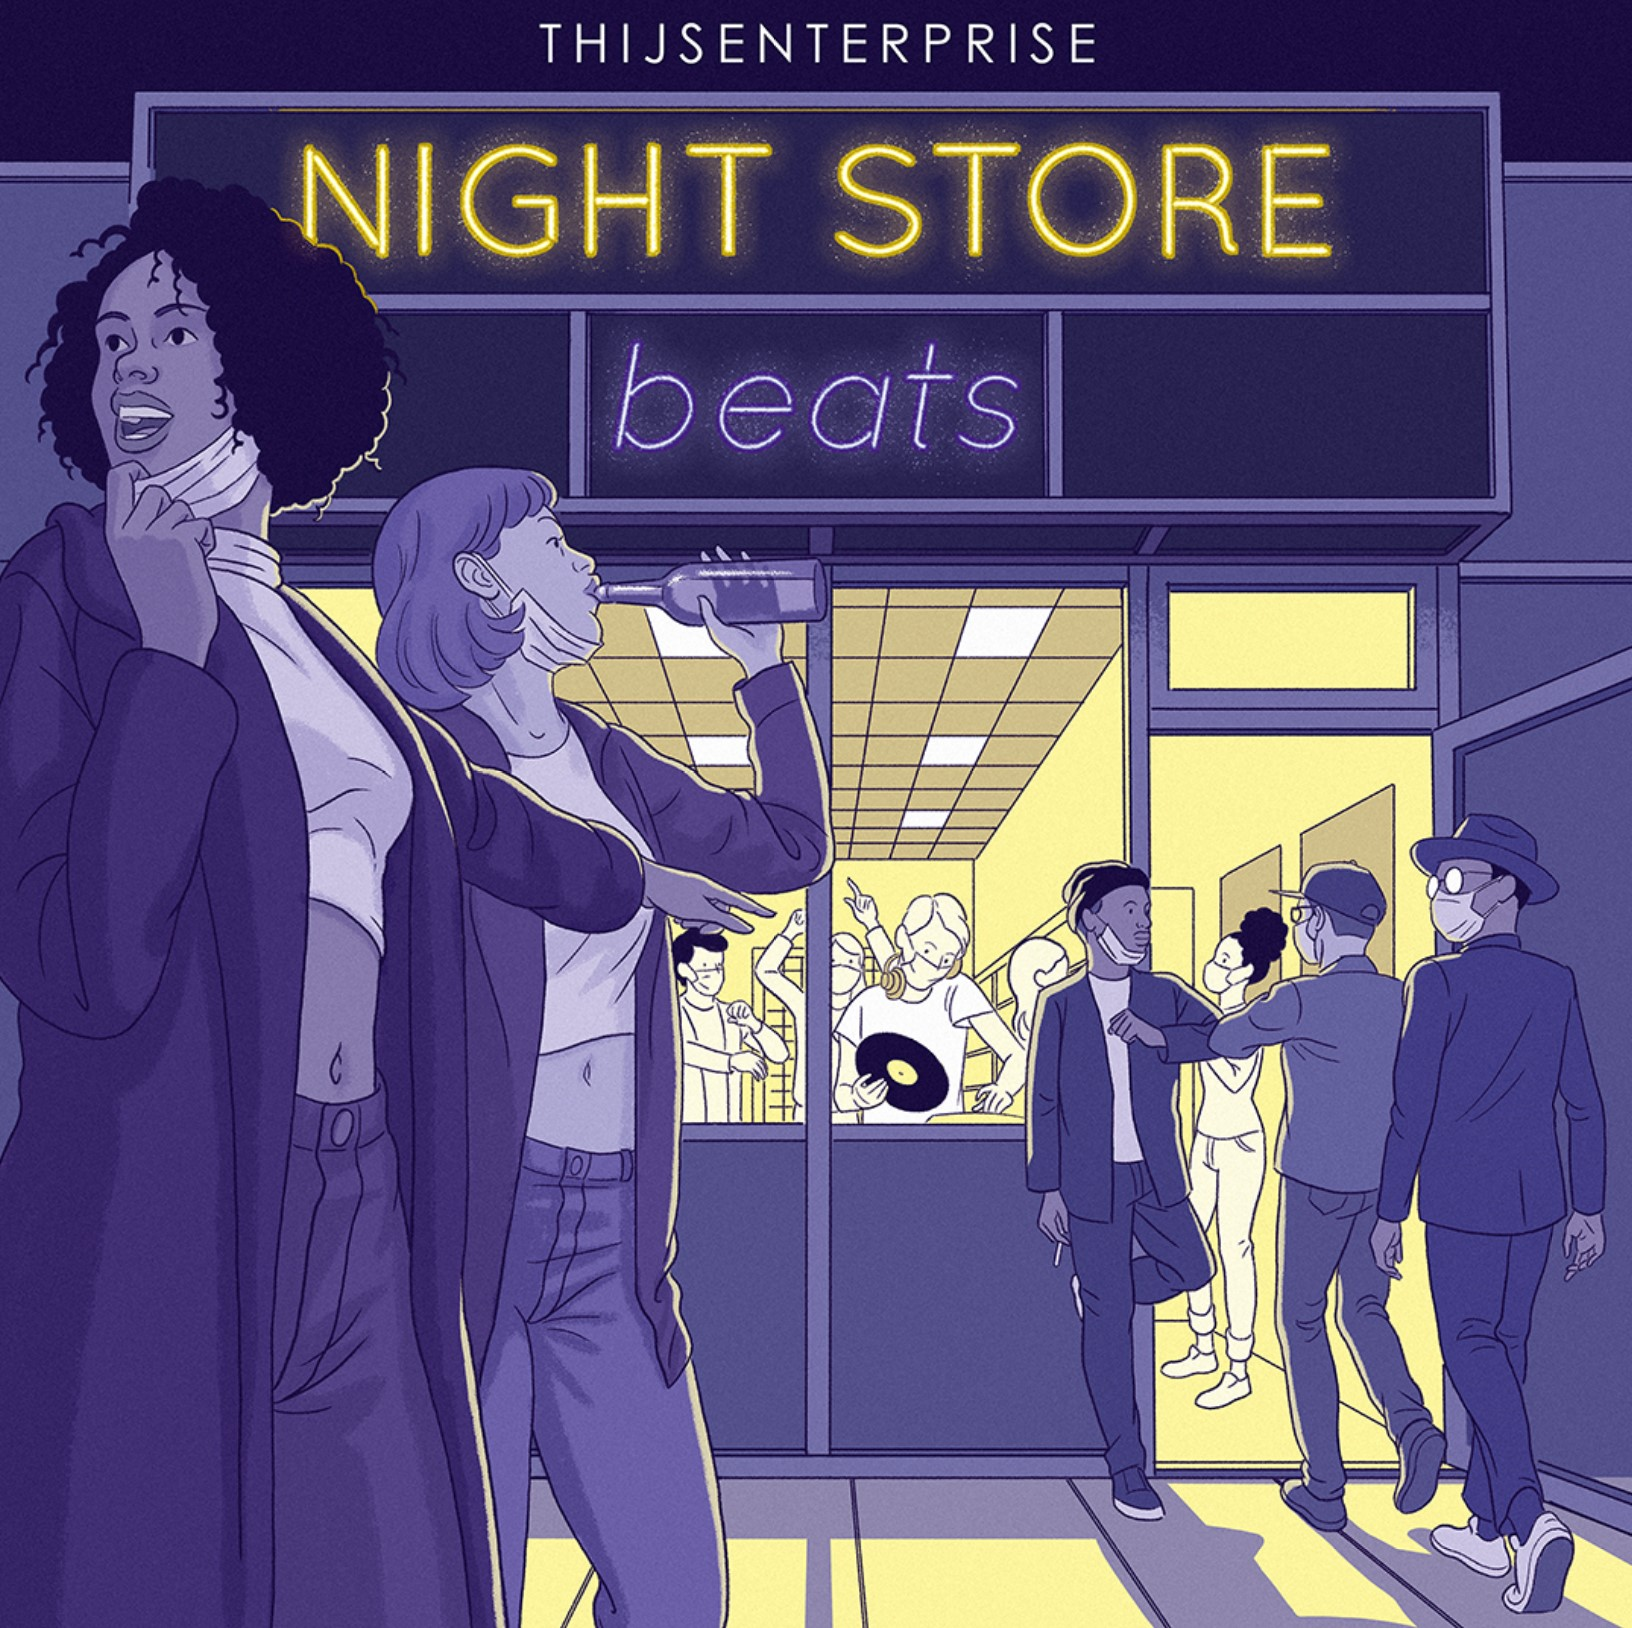 Soul Food, Skunk Breaks & Night Store Beats (Two New Beat Tapes)